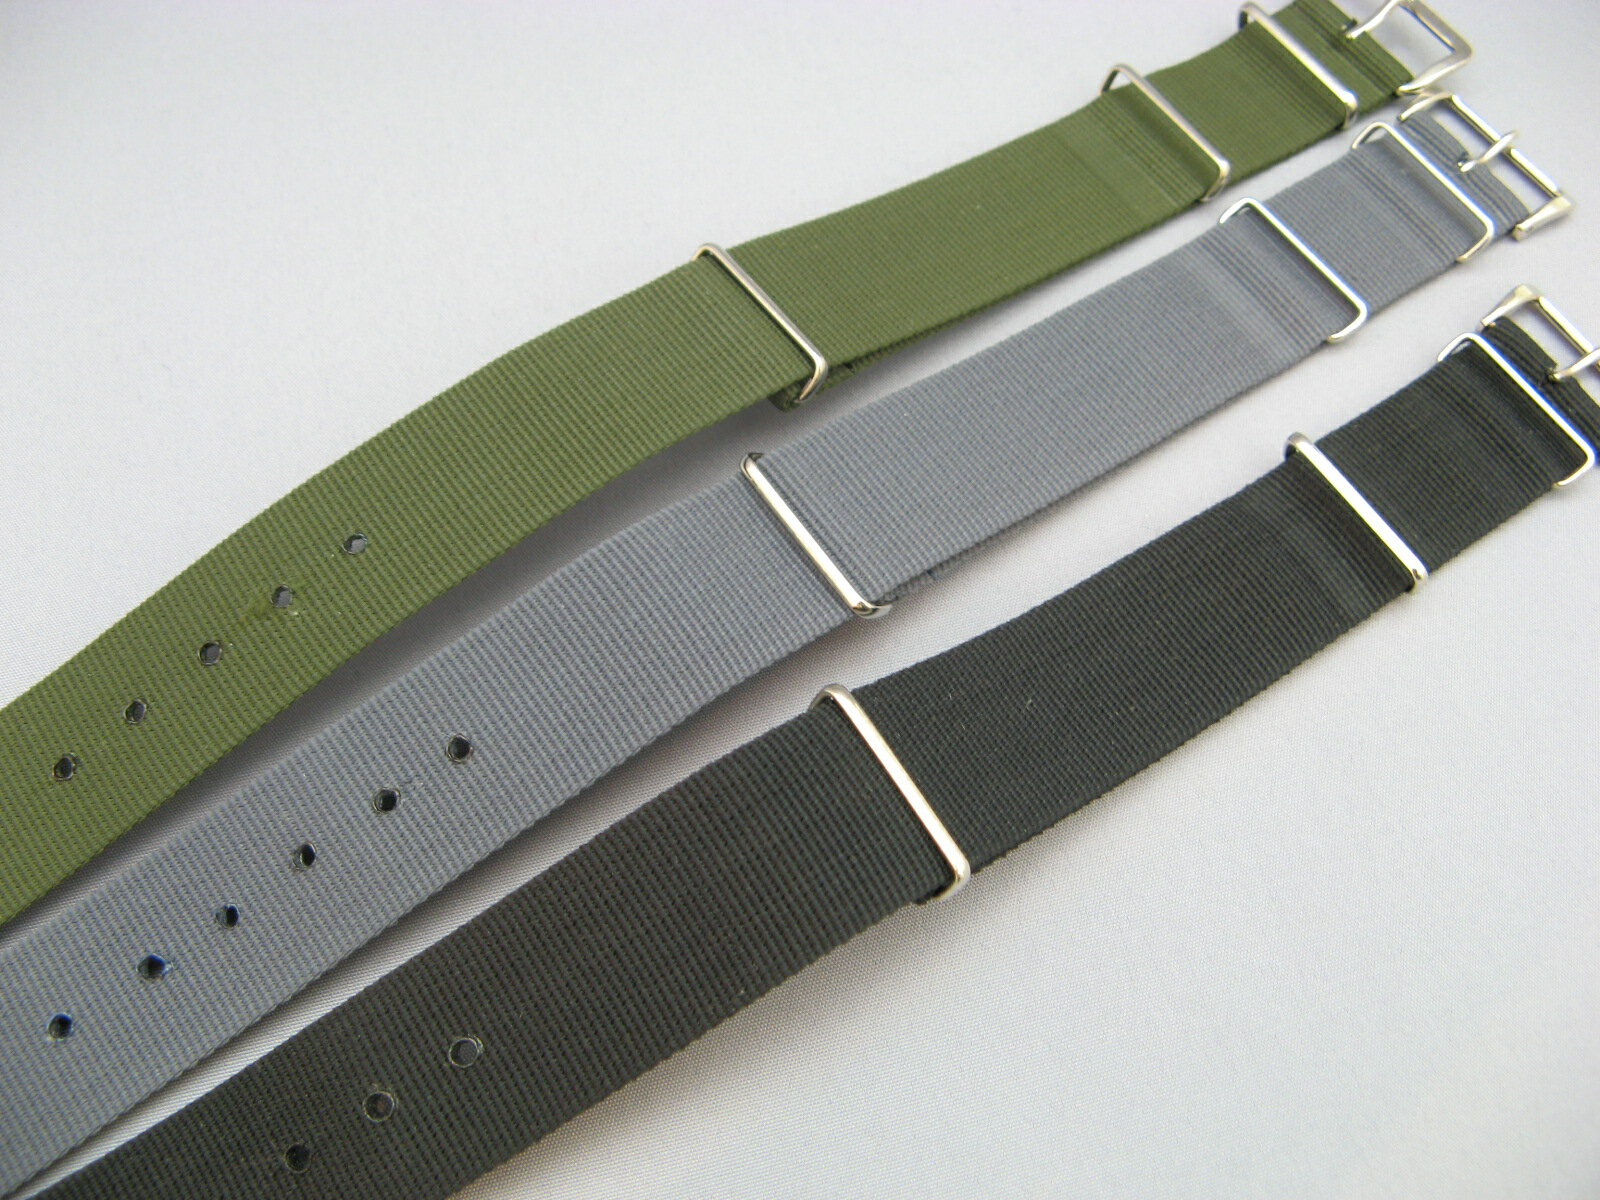 Military NATO army regular Adoption nylon belt